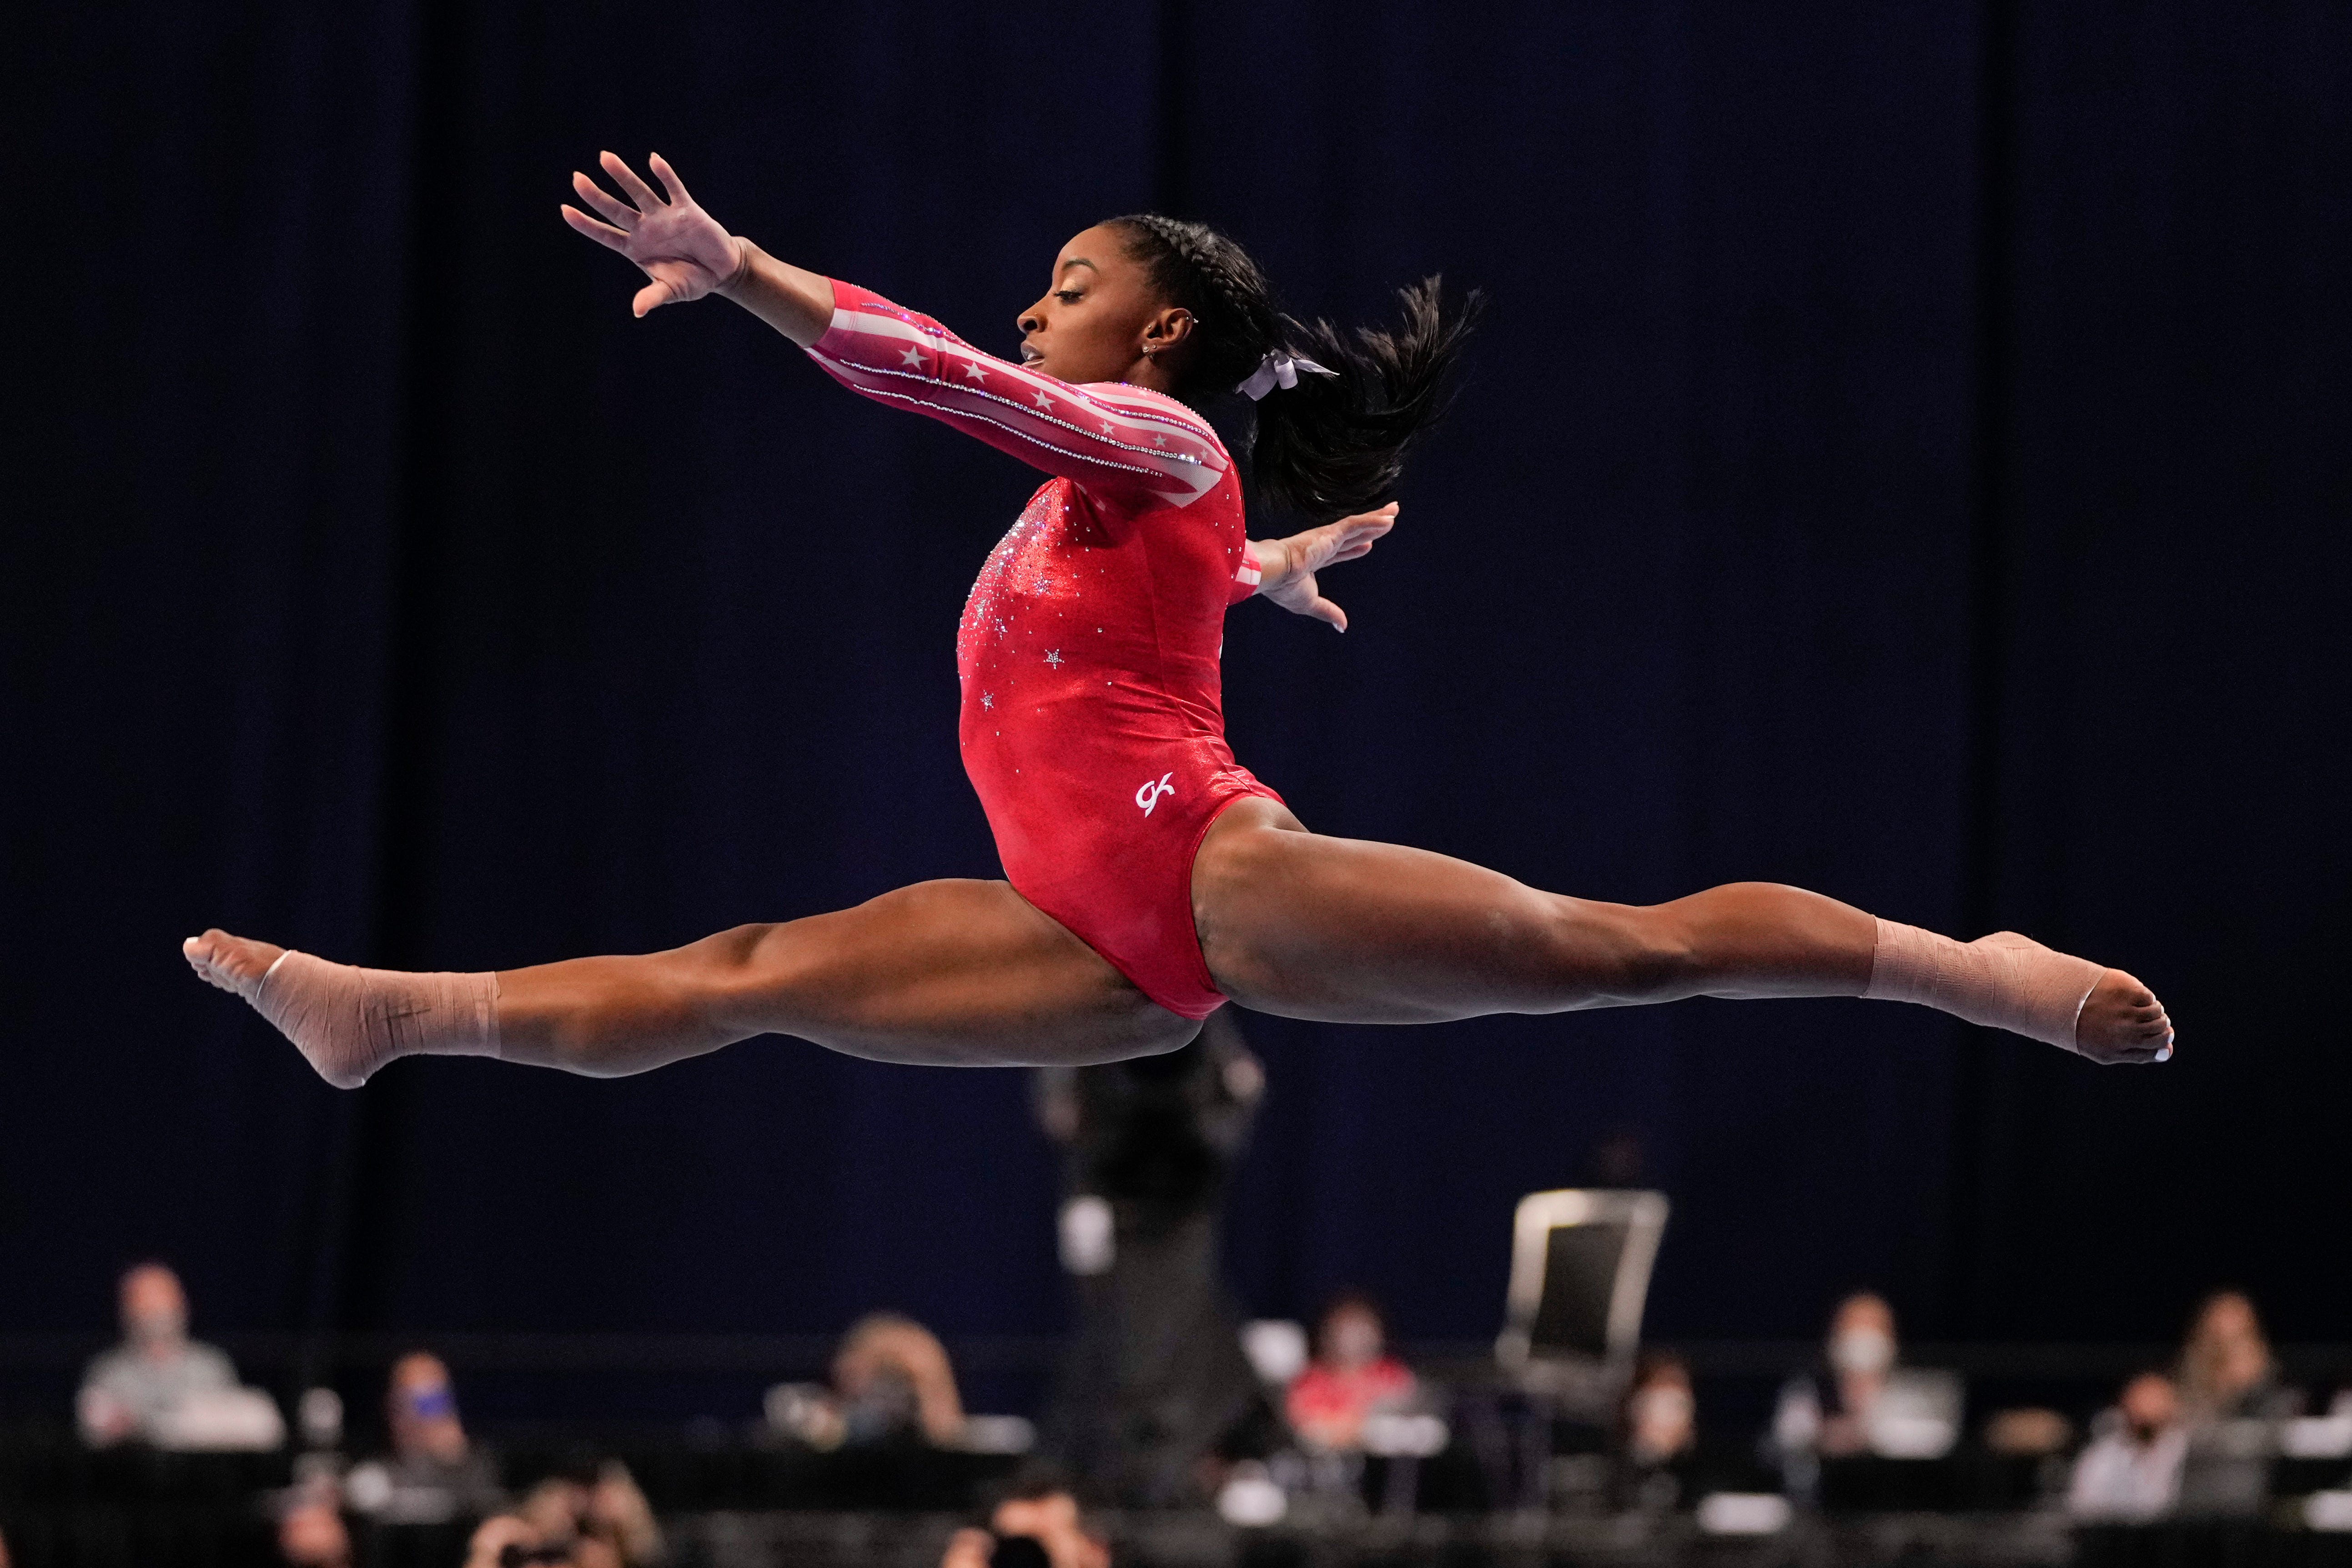 Simone Biles competes in the floor exercise during the women's U.S. Olympic Gymnastics Trials.